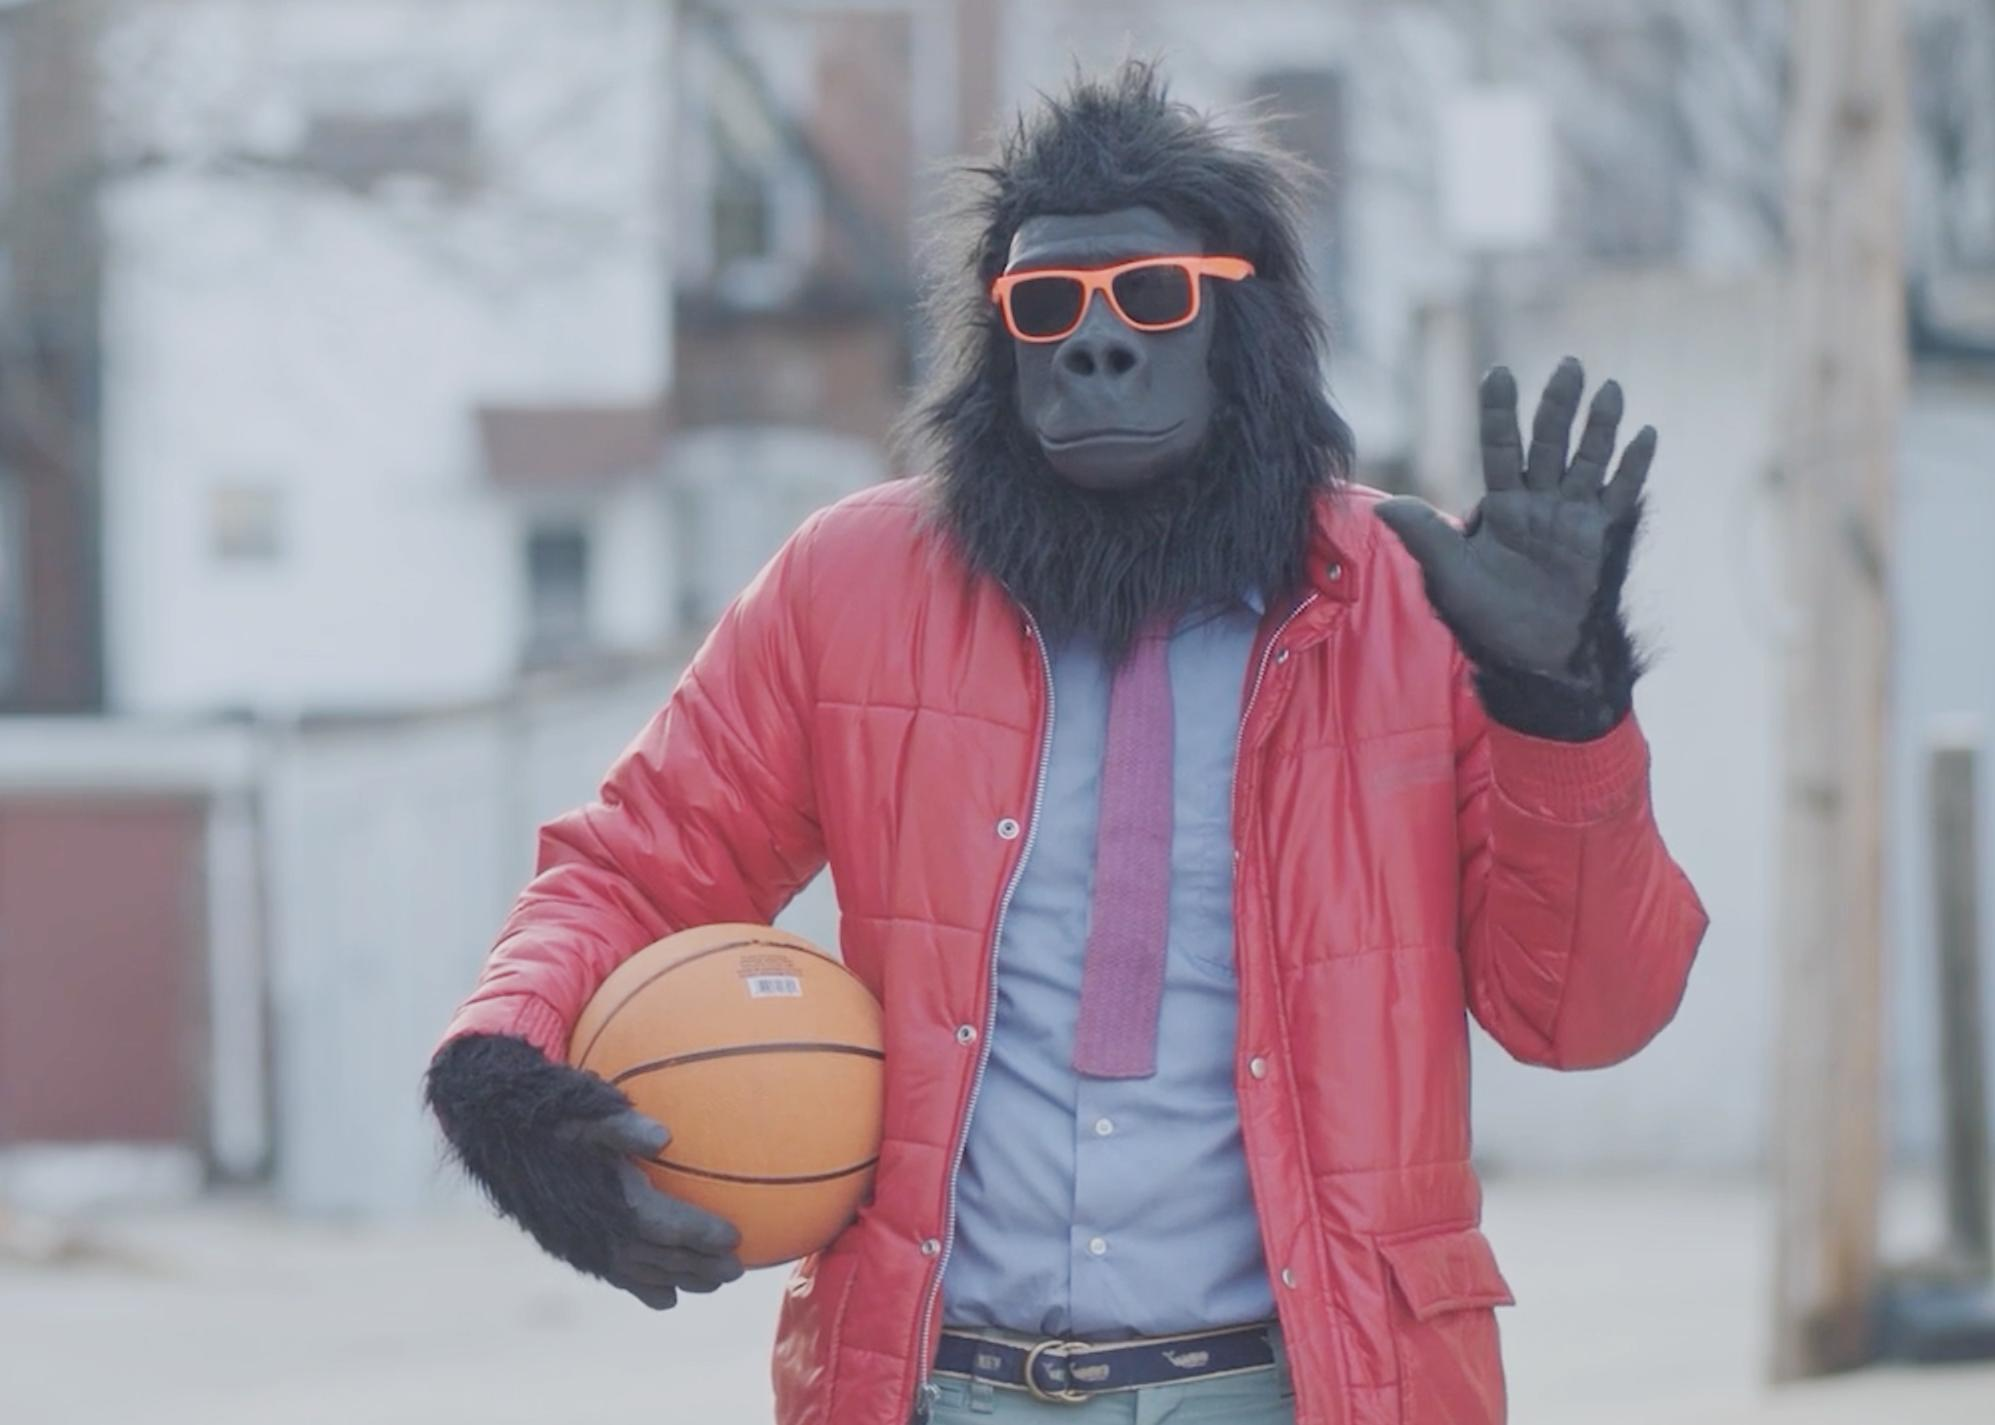 Meet Sylvio. He's a gorilla, so he doesn't talk. But he's a movie gorilla, so he wears cool clothes, maintains a job, likes hoops, etc.